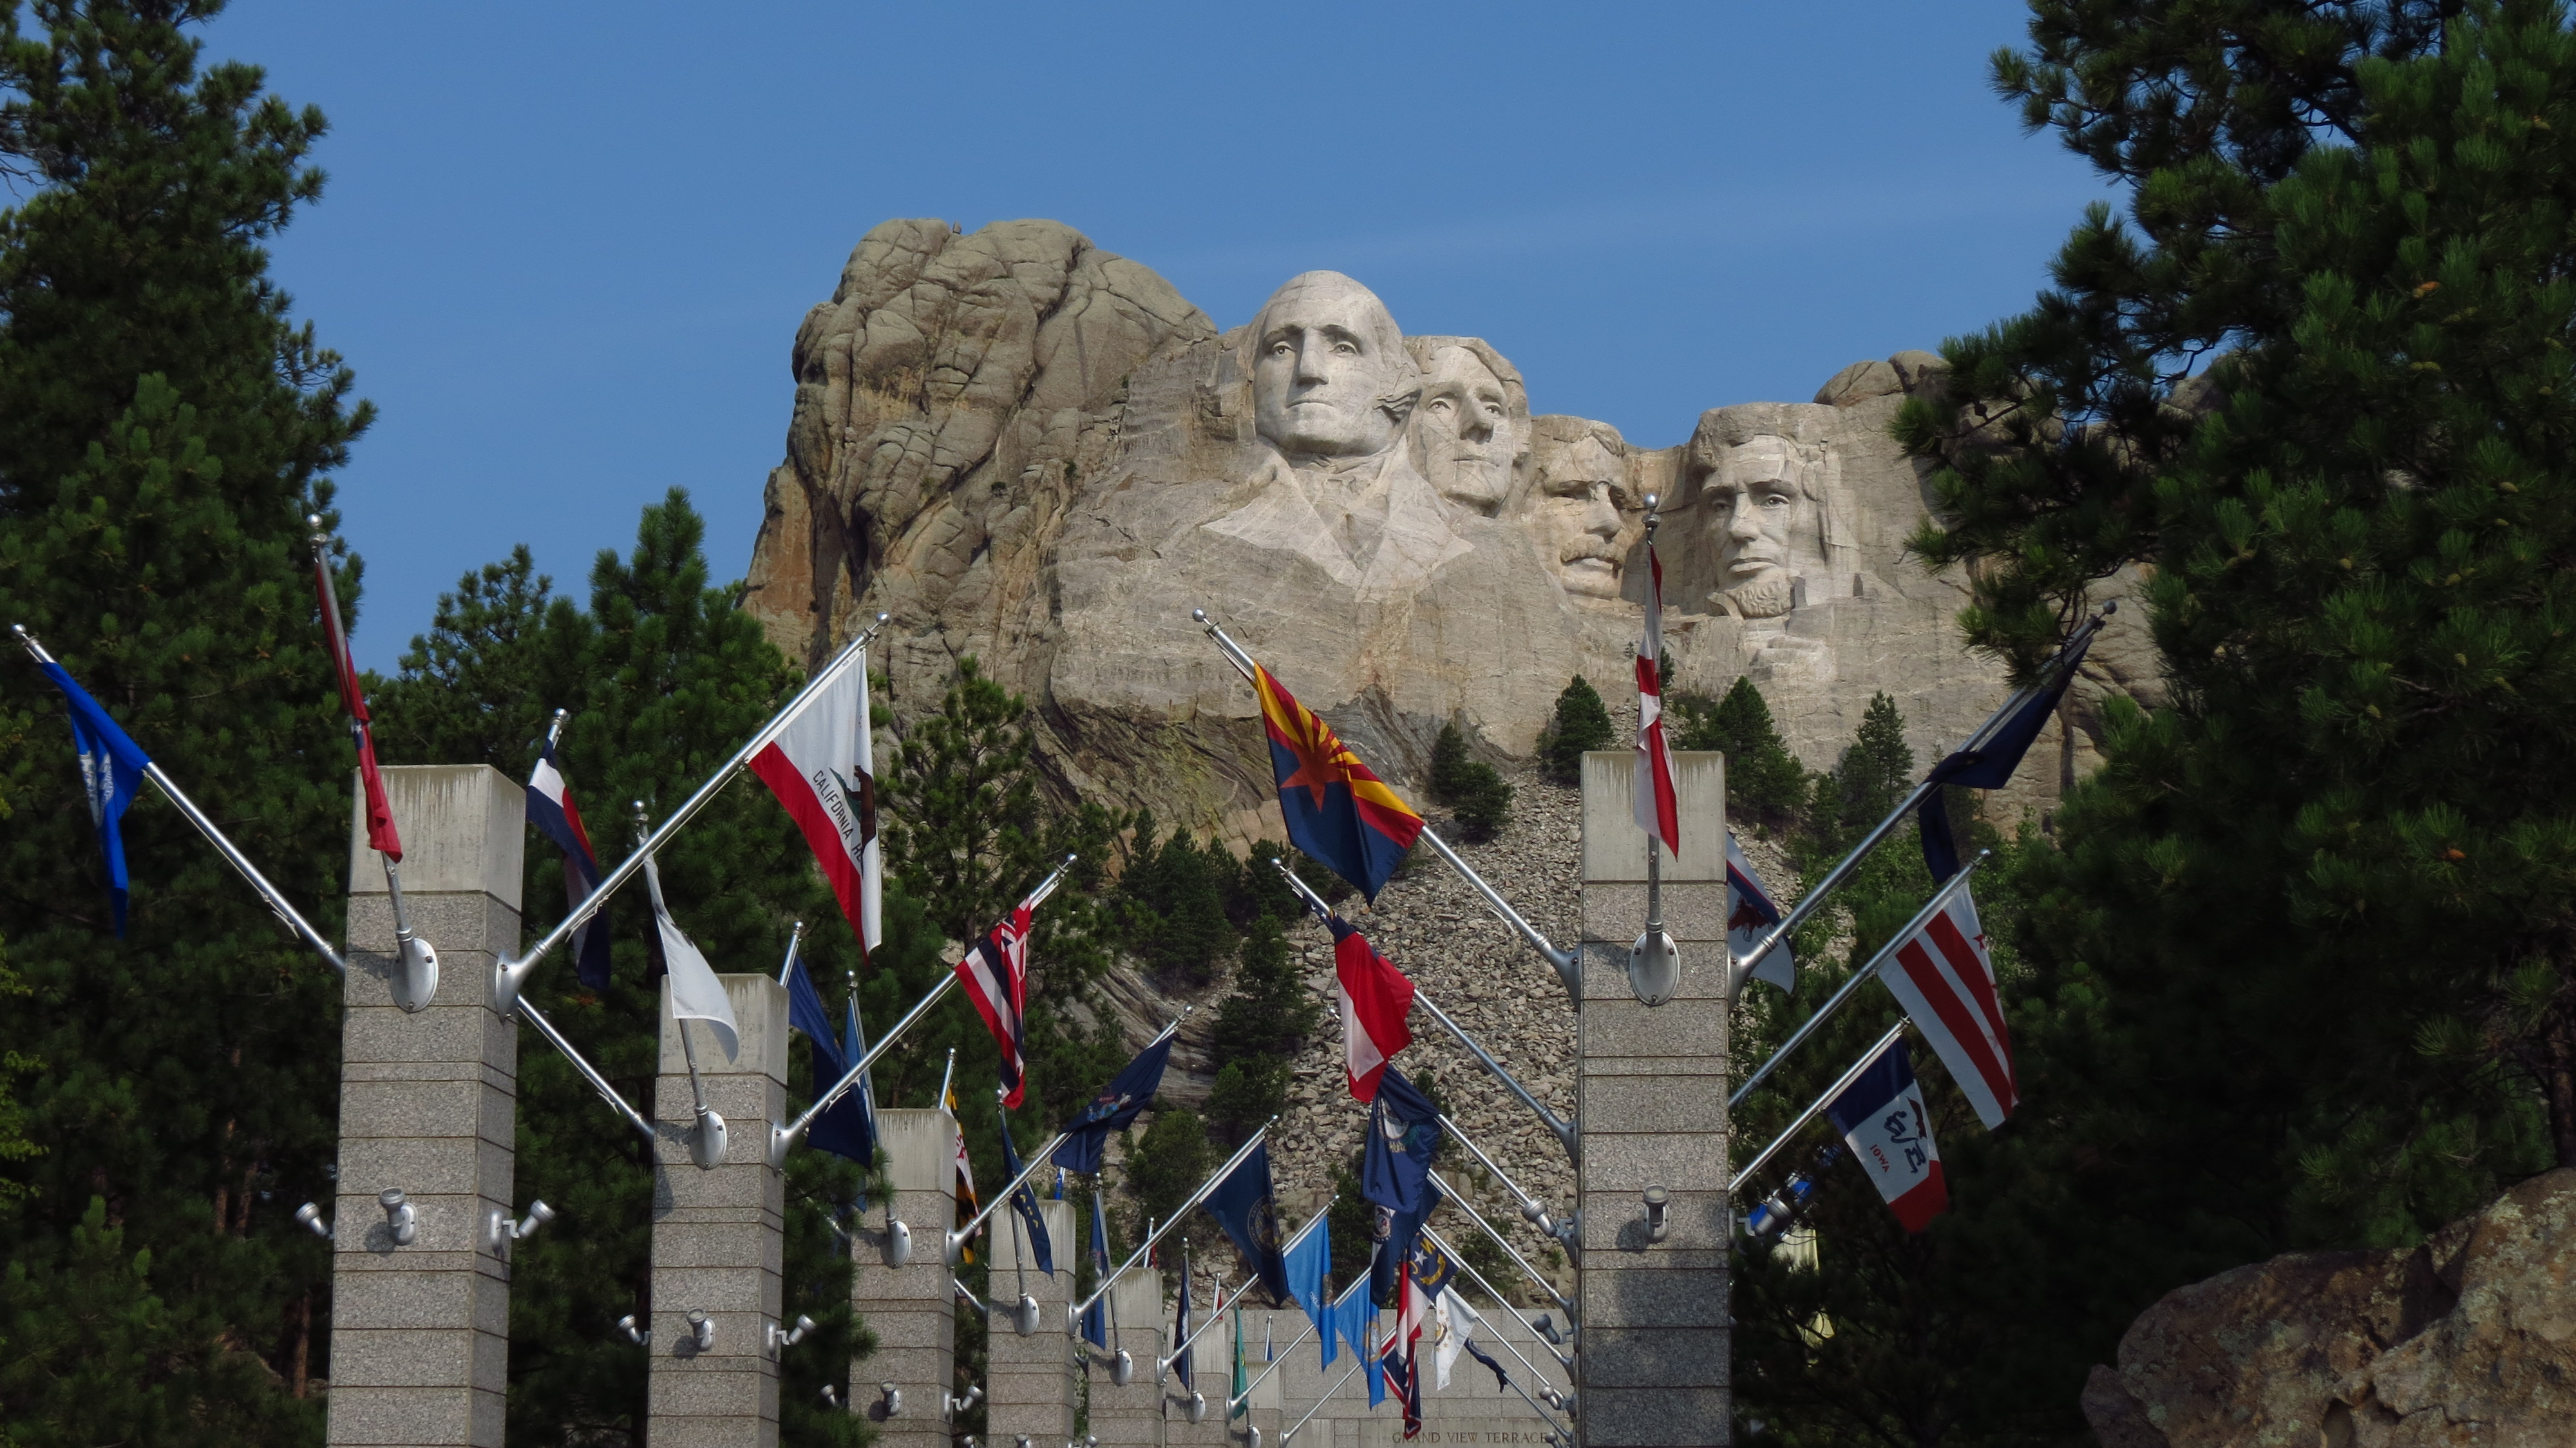 national parks: mount rushmore